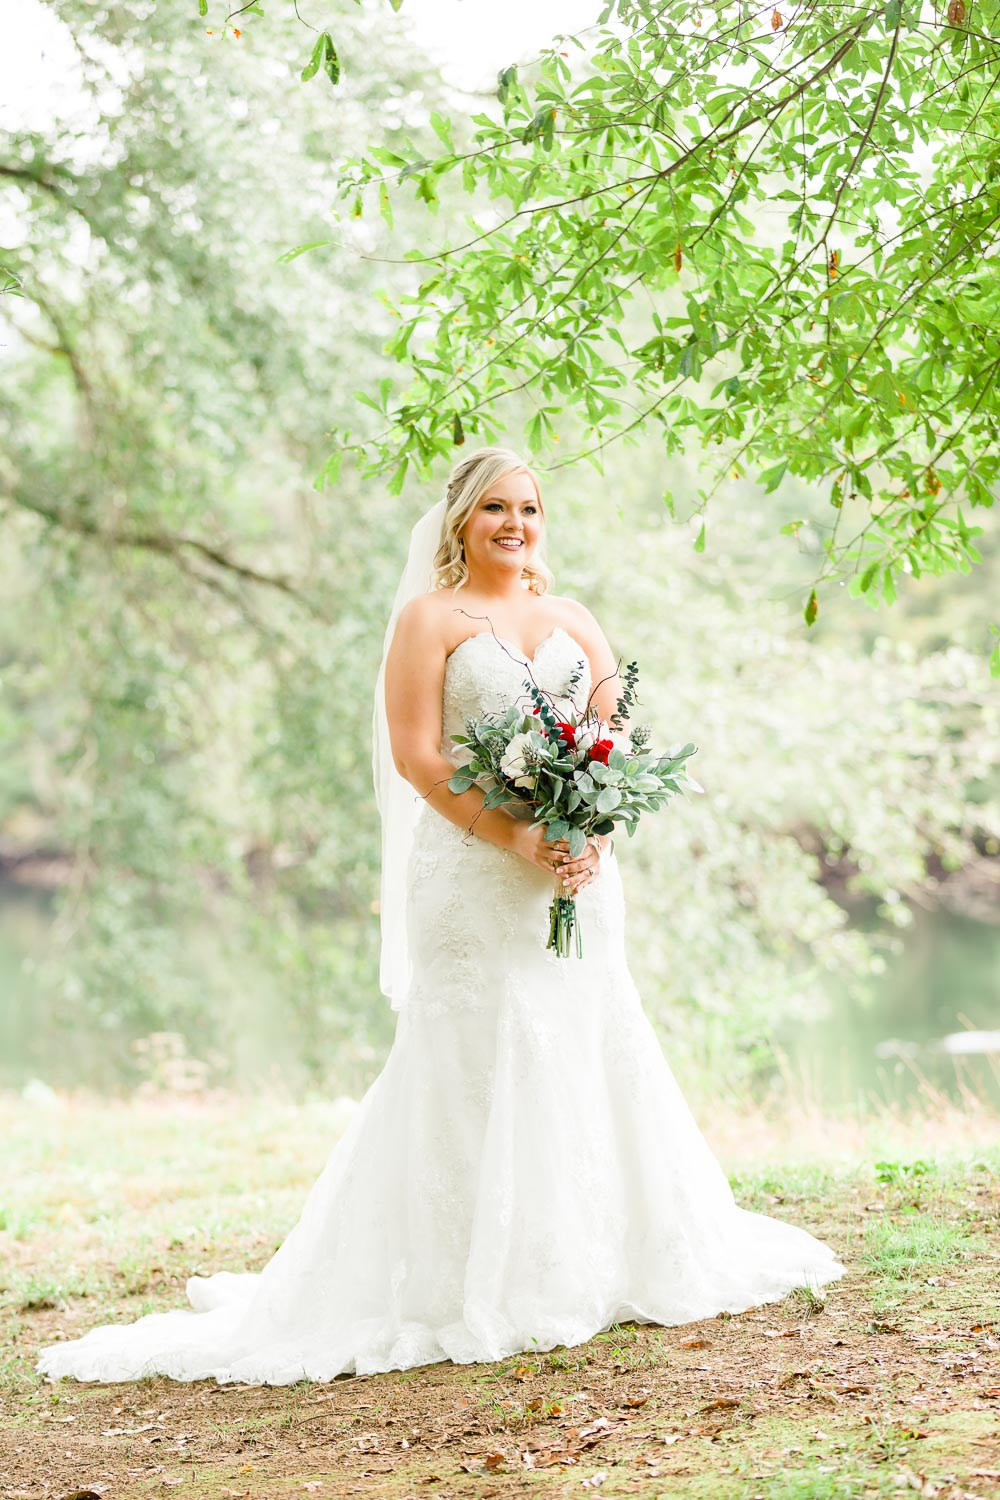 bride outside onder green trees by the river in October